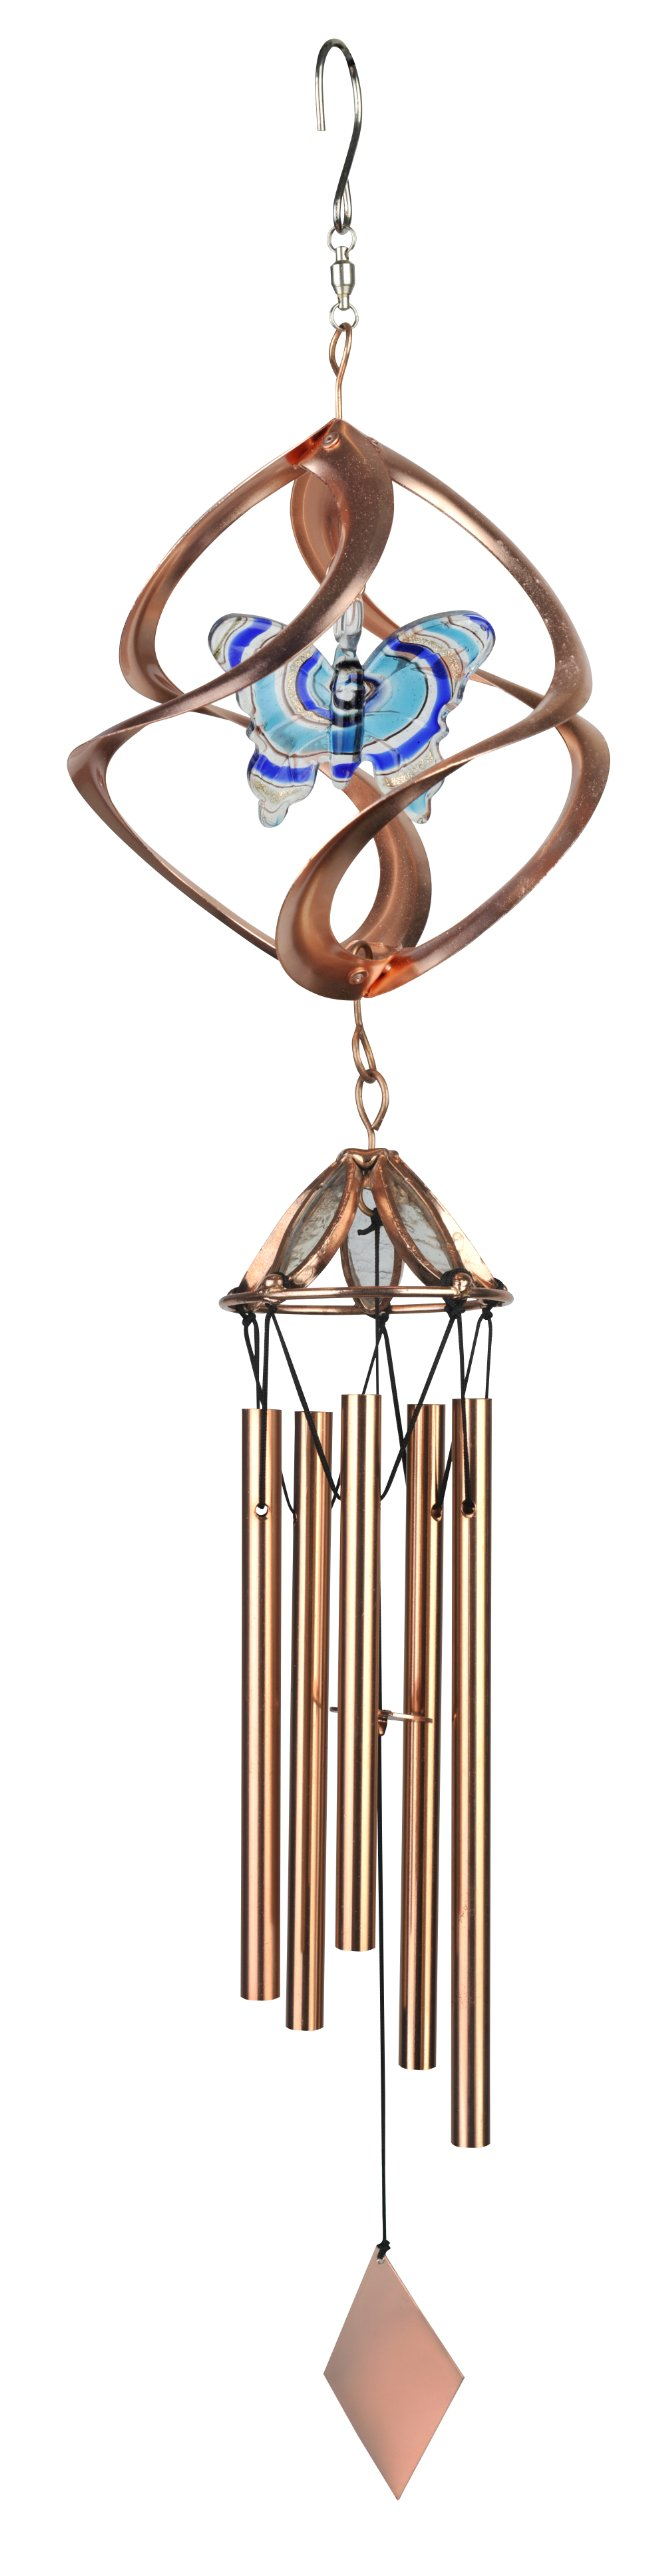 Red Carpet Studios Cosmix Copper Wind Spinner and Chime, Butterfly